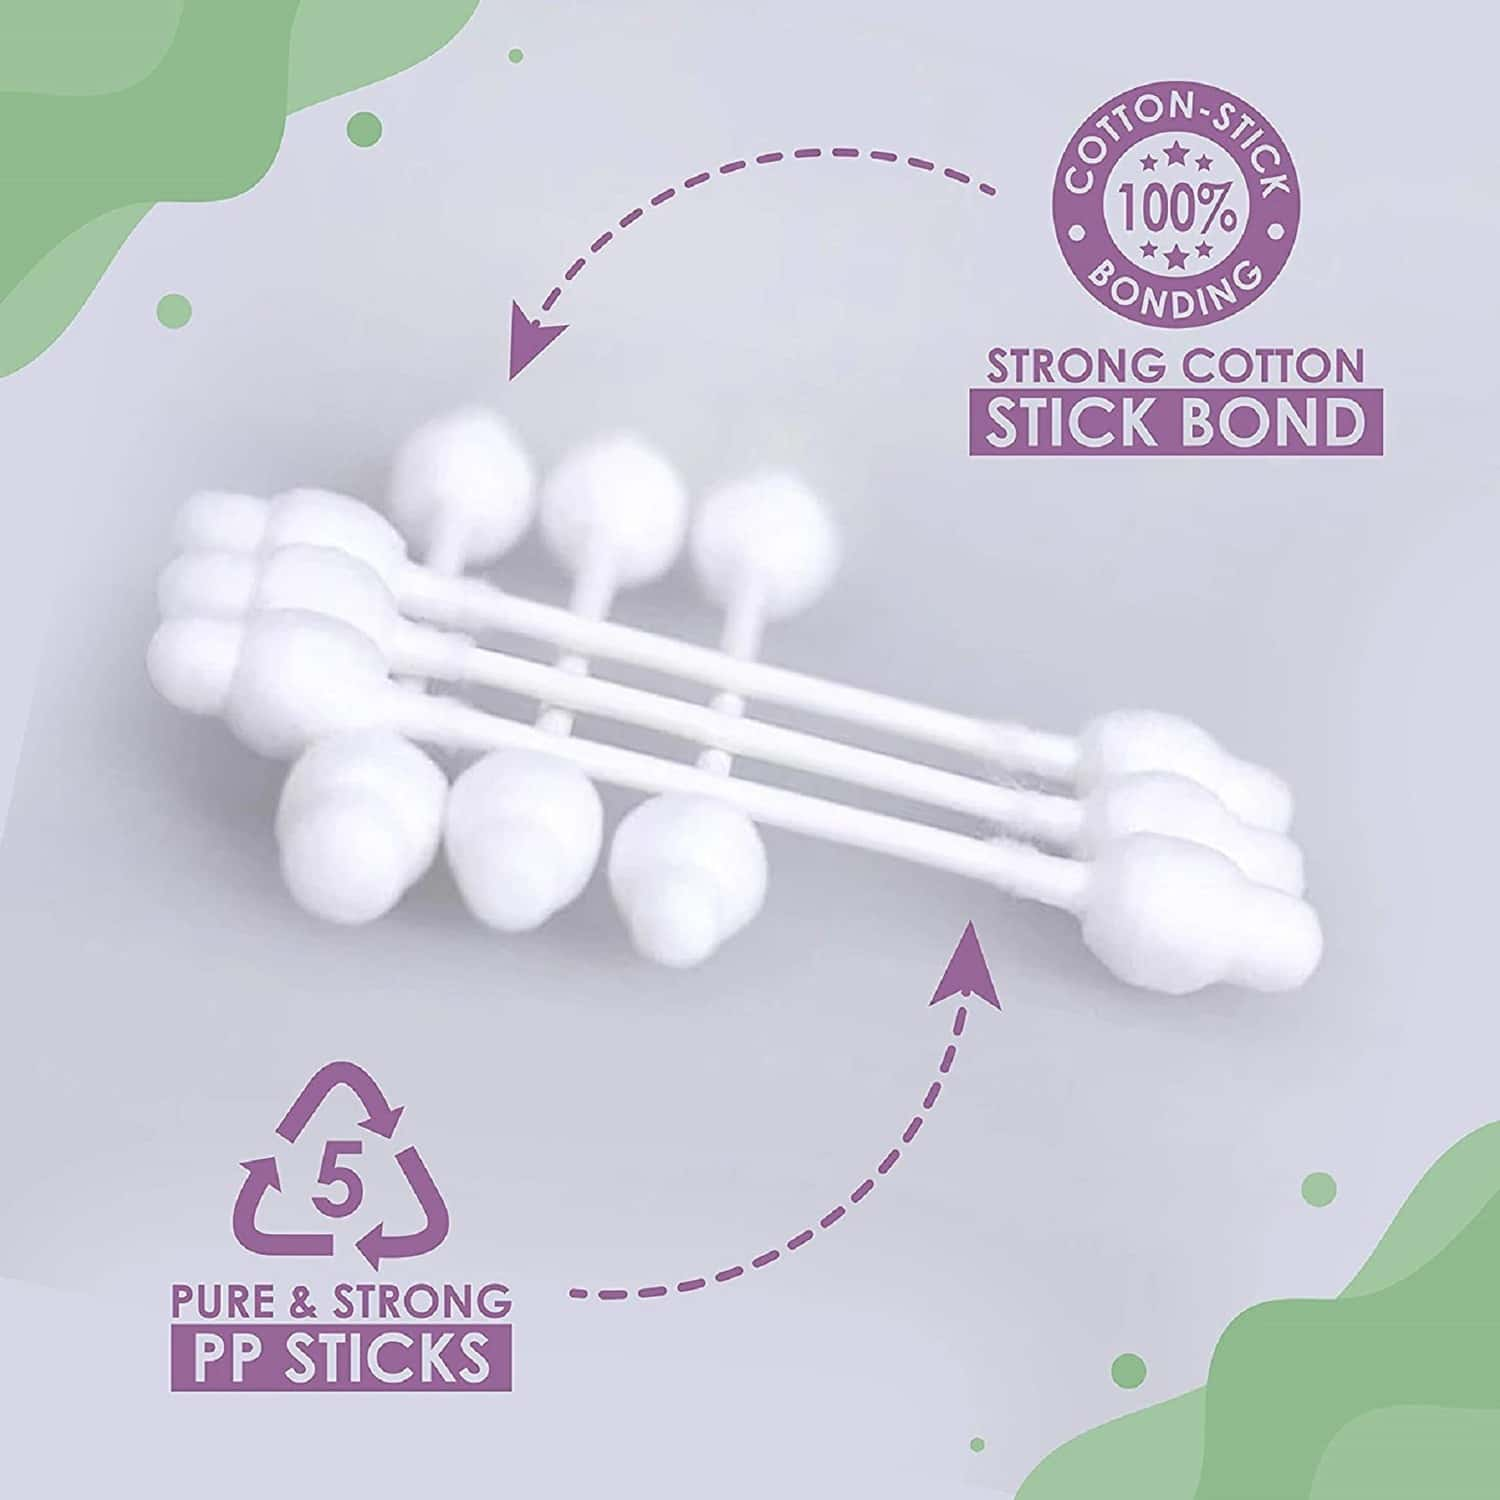 Luvlap Baby 100% Unbleached Cotton Buds For Ear Cleaning With Ear Drum Protection, 55 Pcs, White